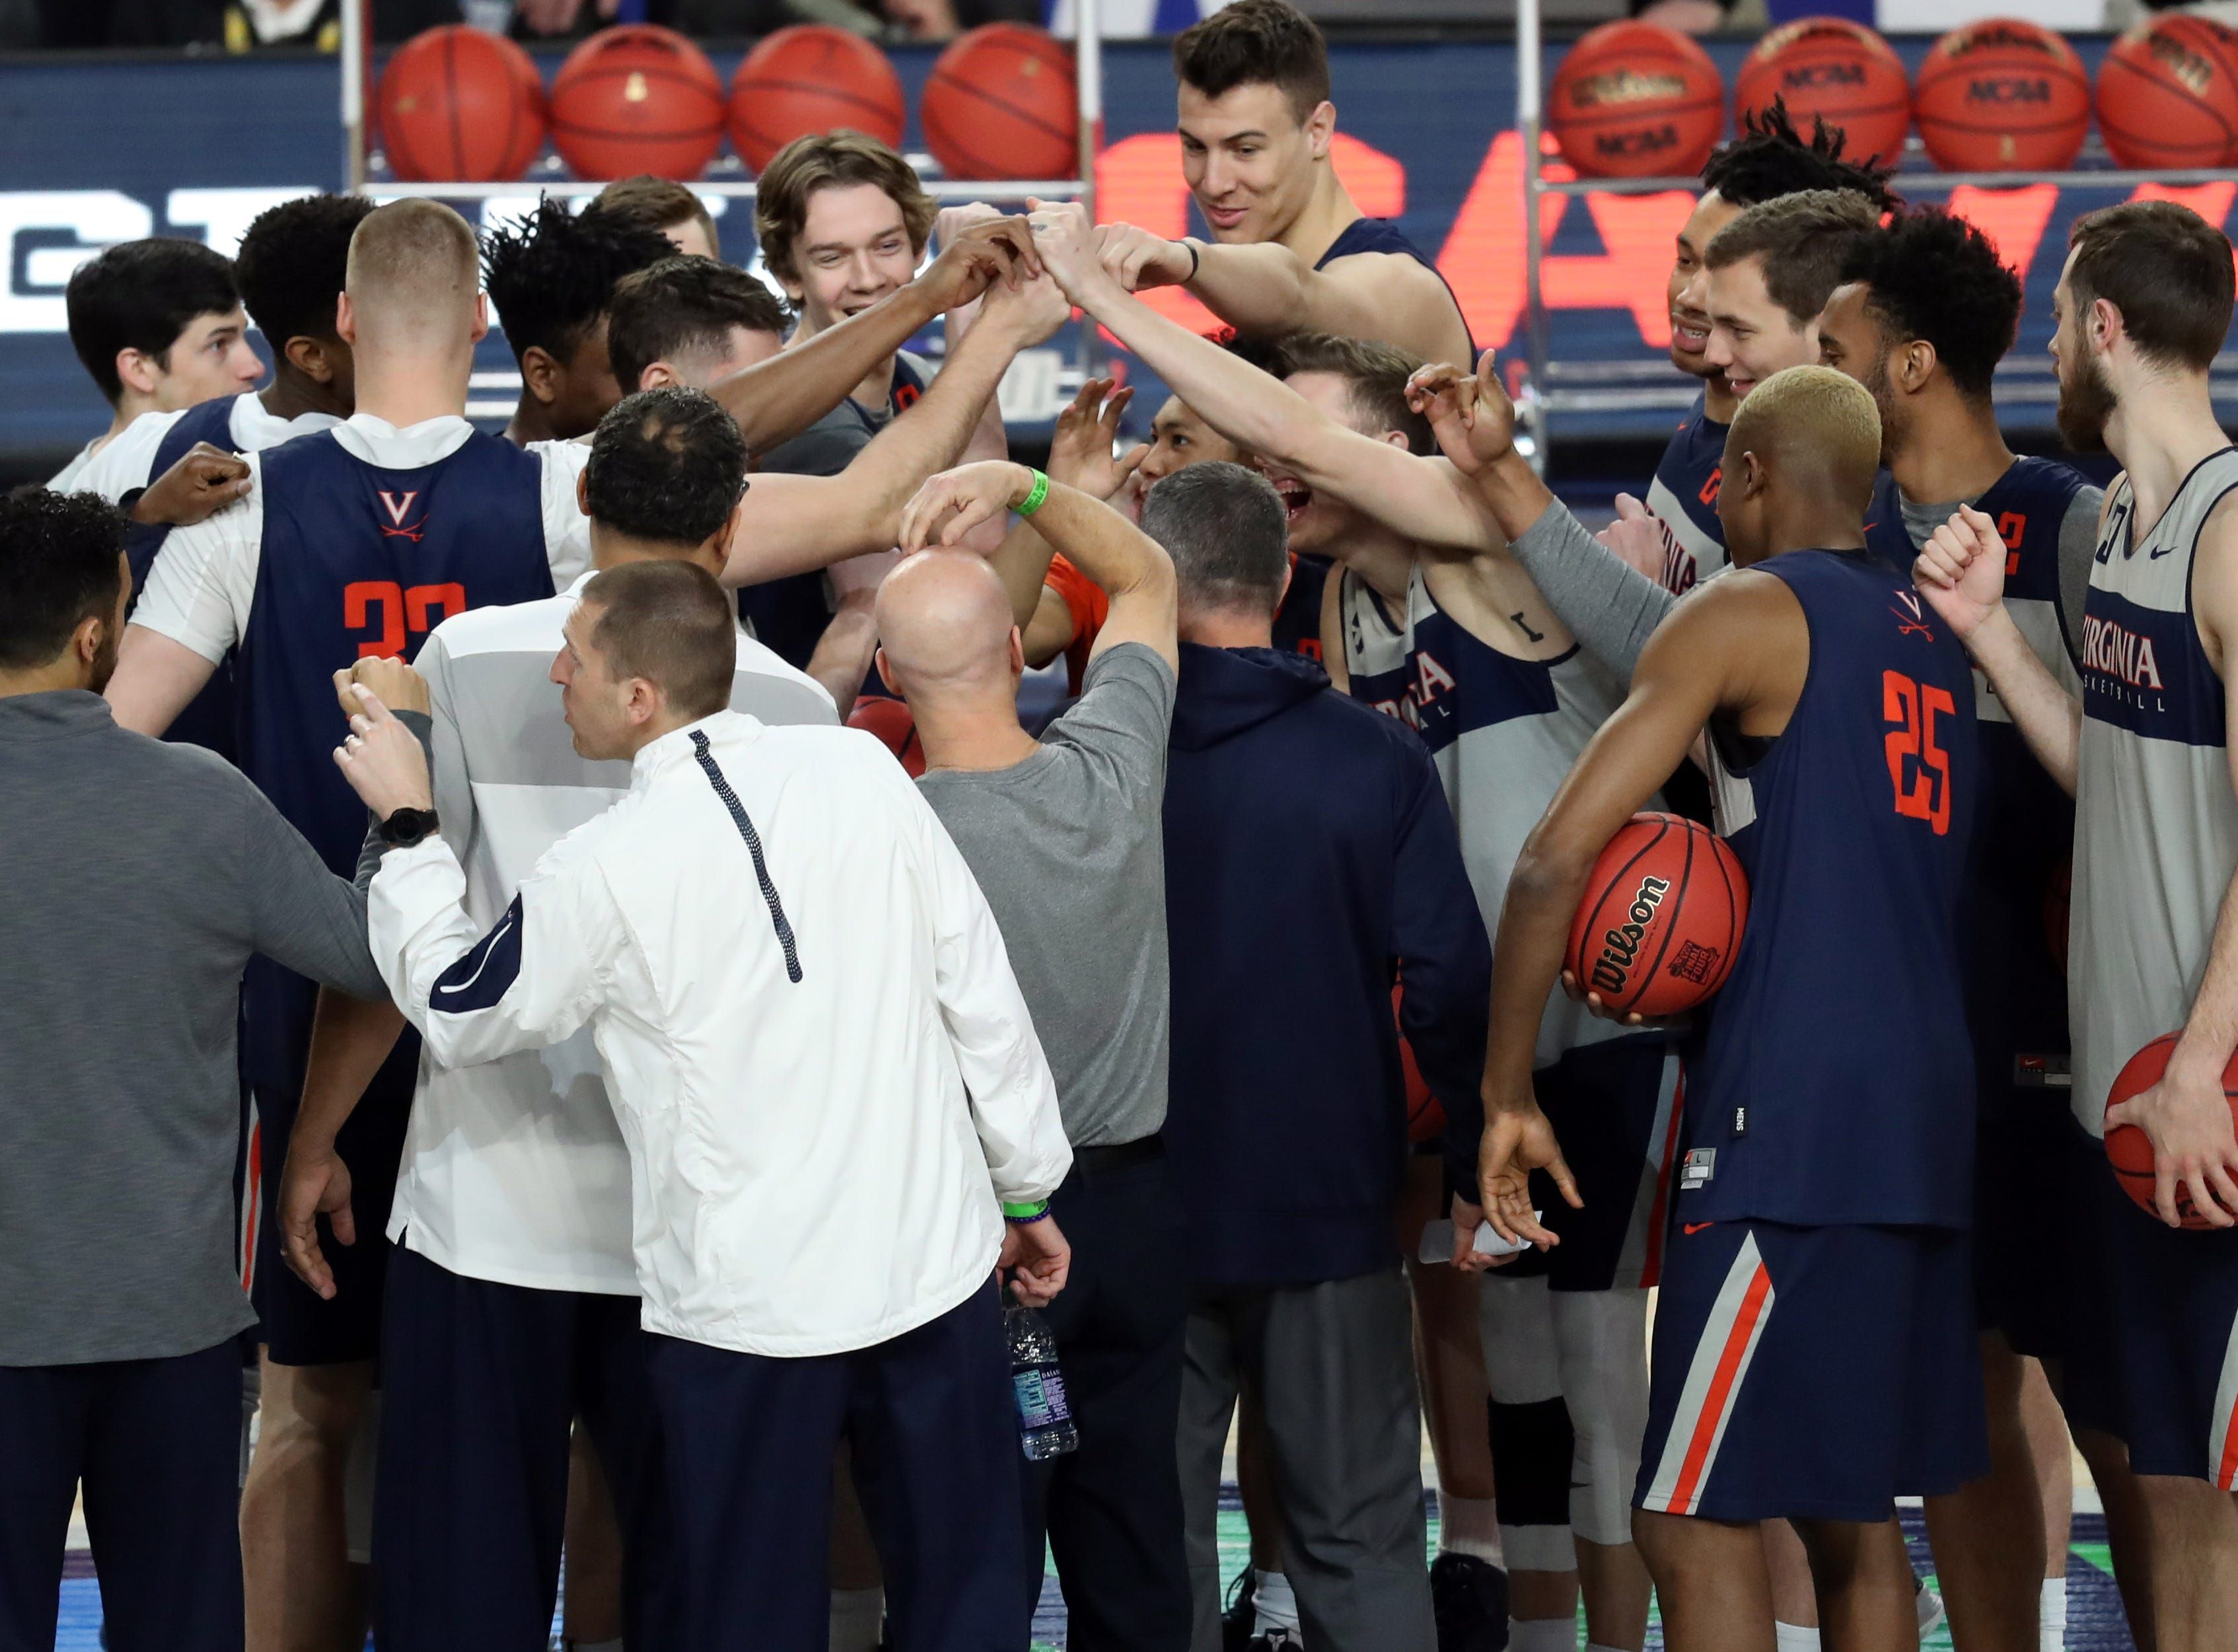 Apr 5, 2019; Minneapolis, MN, USA; The Auburn Tigers meet at center court after practice for the 2019 men's Final Four at US Bank Stadium. Mandatory Credit: Brace Hemmelgarn-USA TODAY Sports